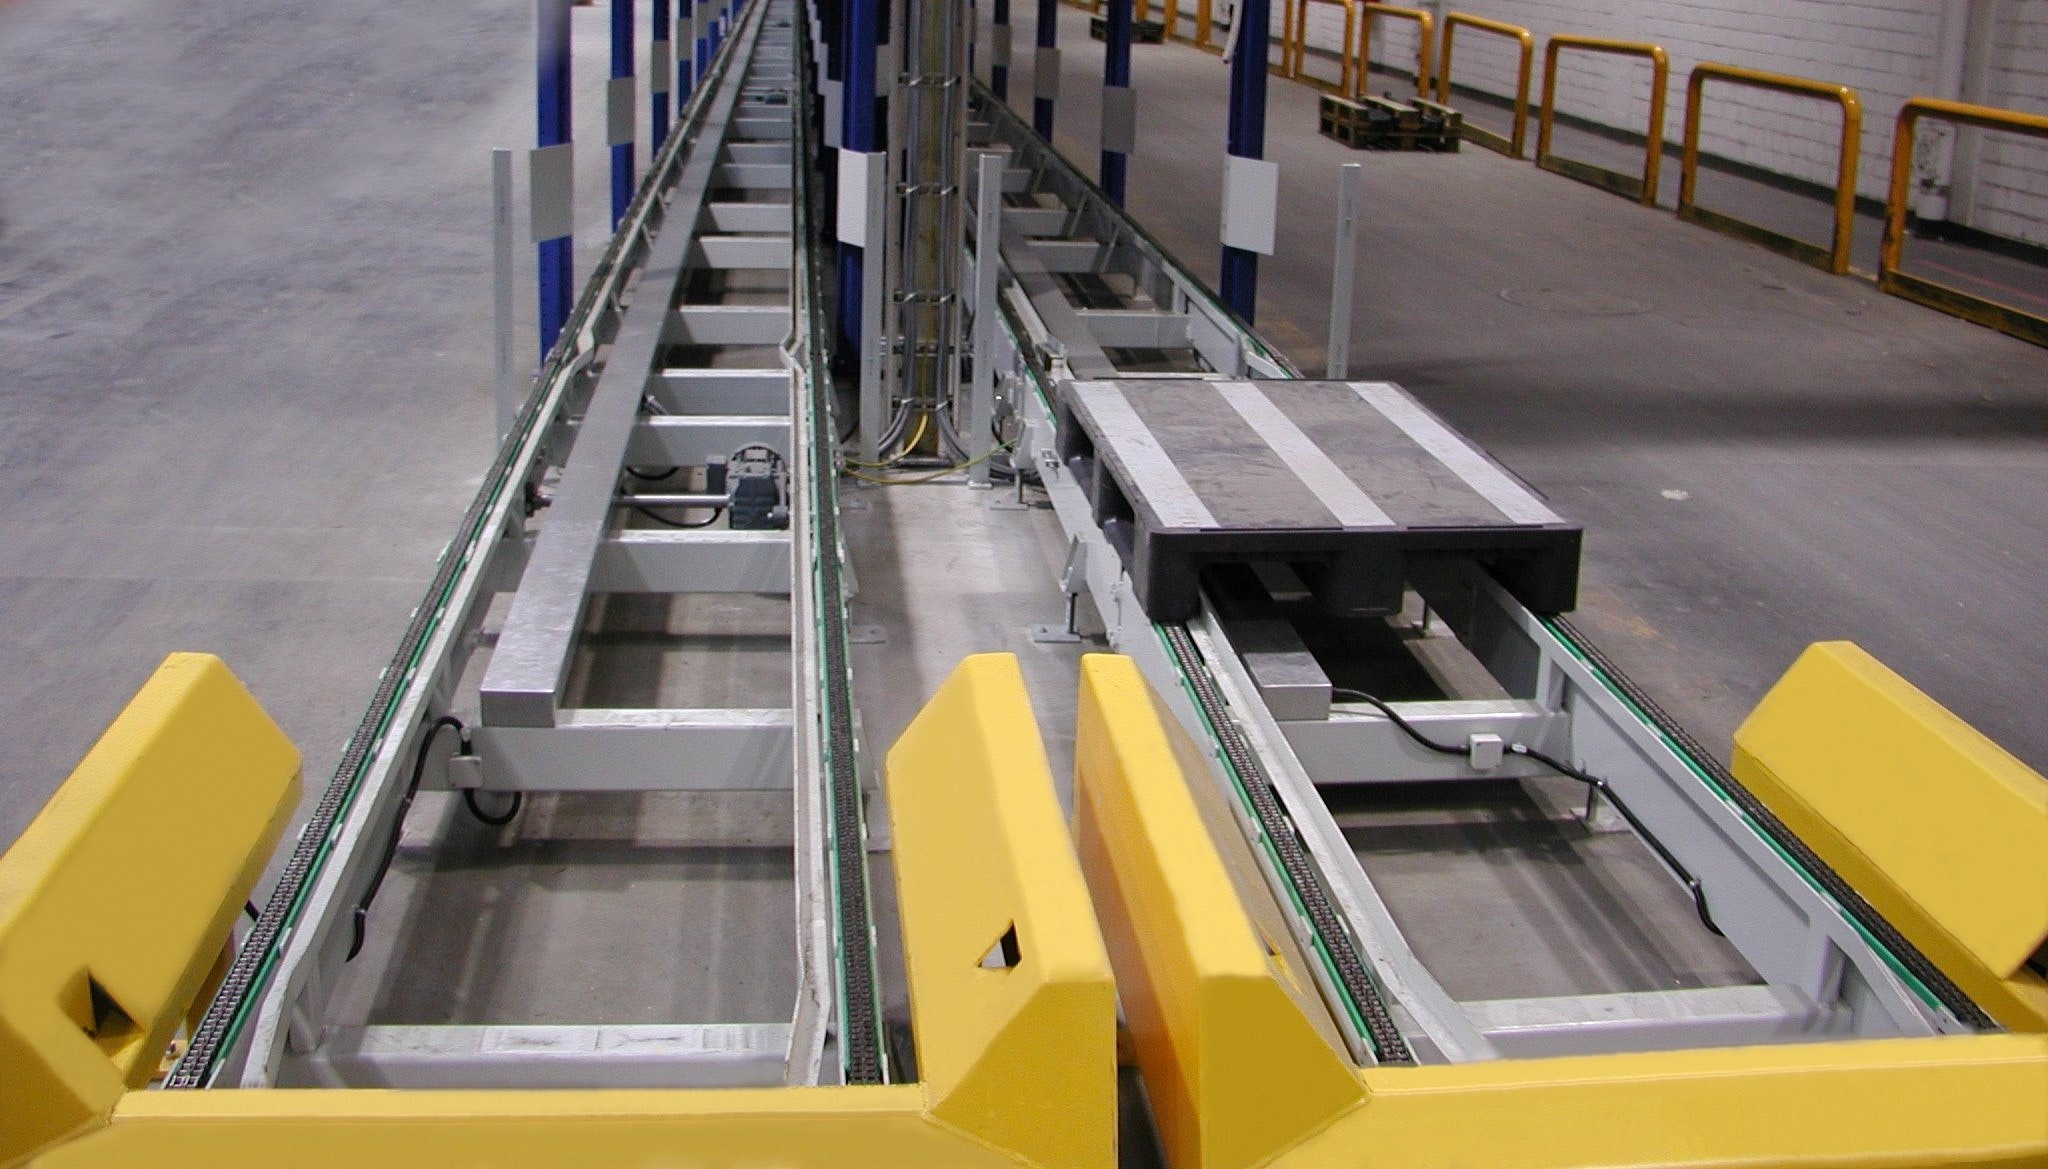 Chain conveyor with support tool by loading and unloading für specific pallets